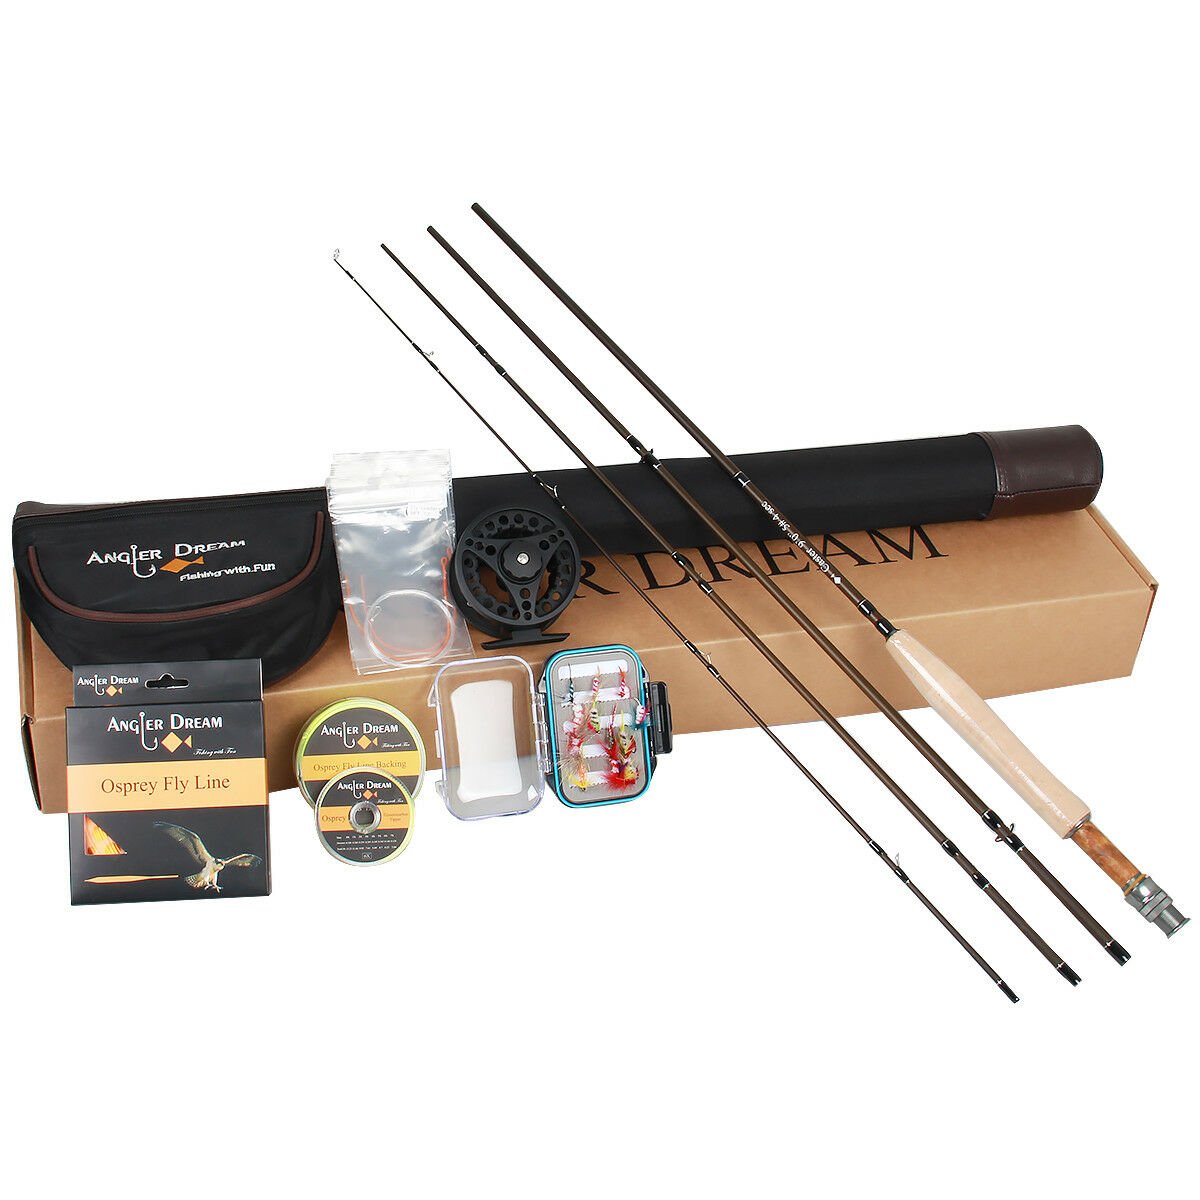 3 5 8WT Fly Fishing Rod Combo Carbon Fiber Fly  Rod CNC Fly Reel WF Fly Line  best service